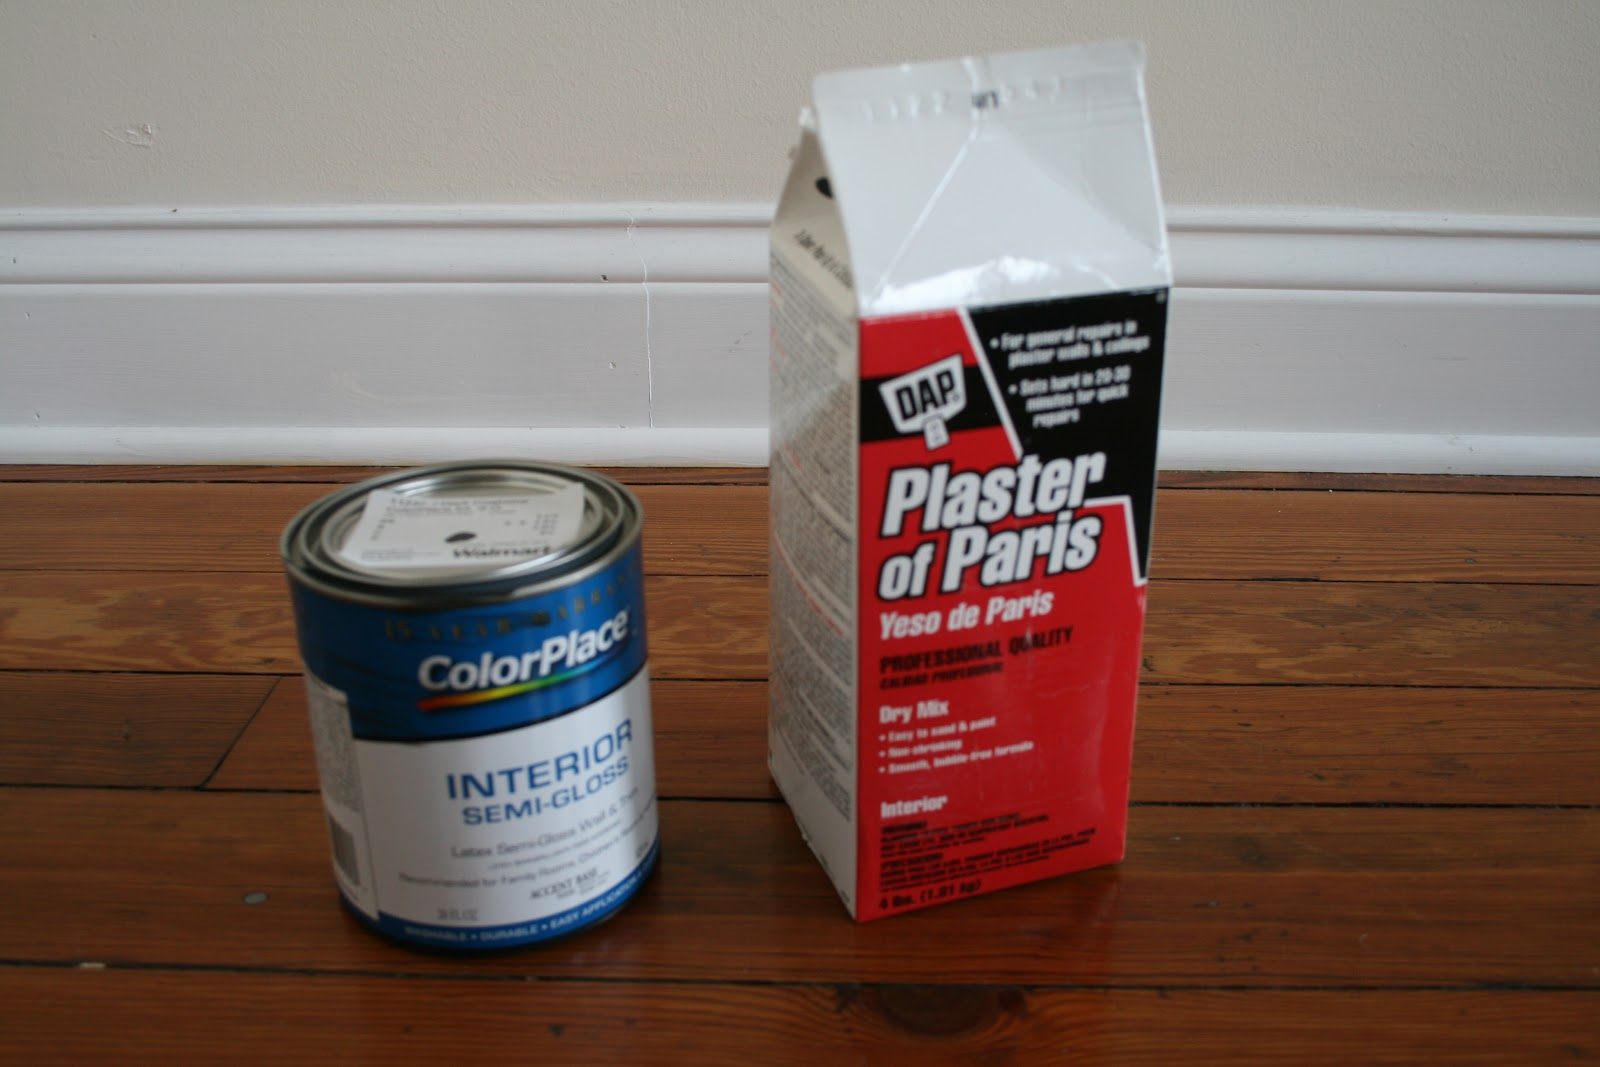 Paint Brands At Home Depot